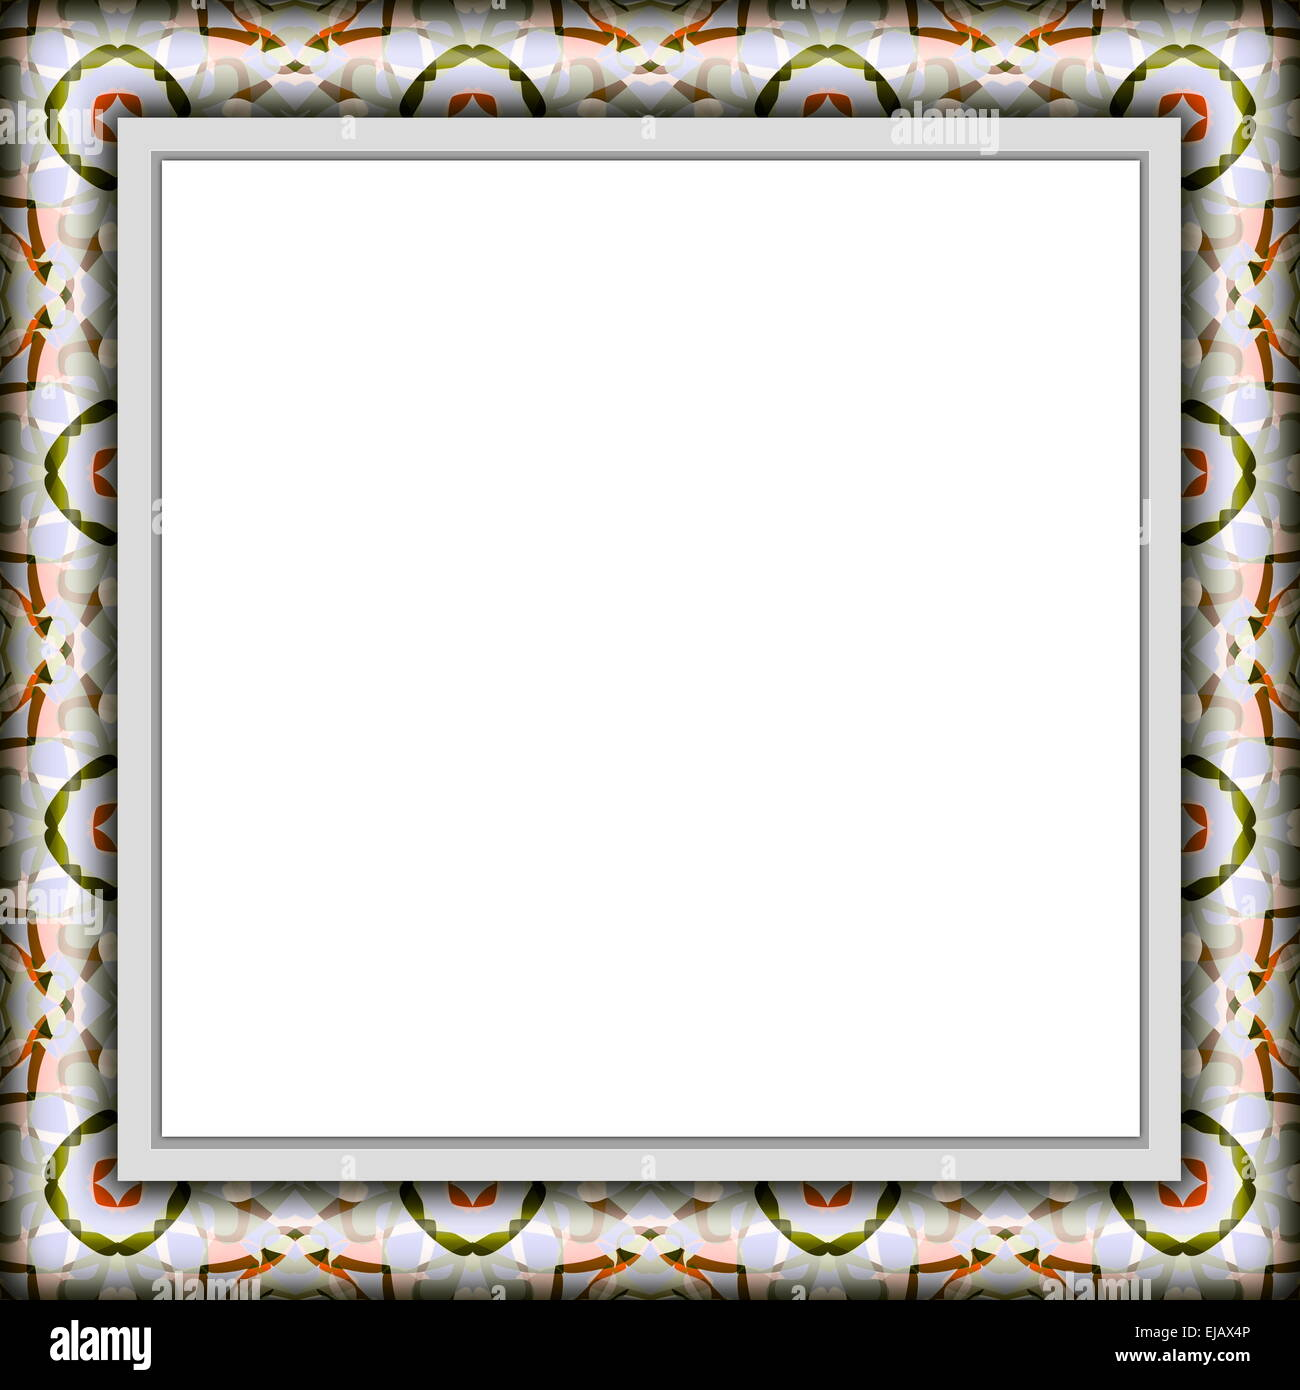 frame with passepartout Stock Photo: 80145318 - Alamy